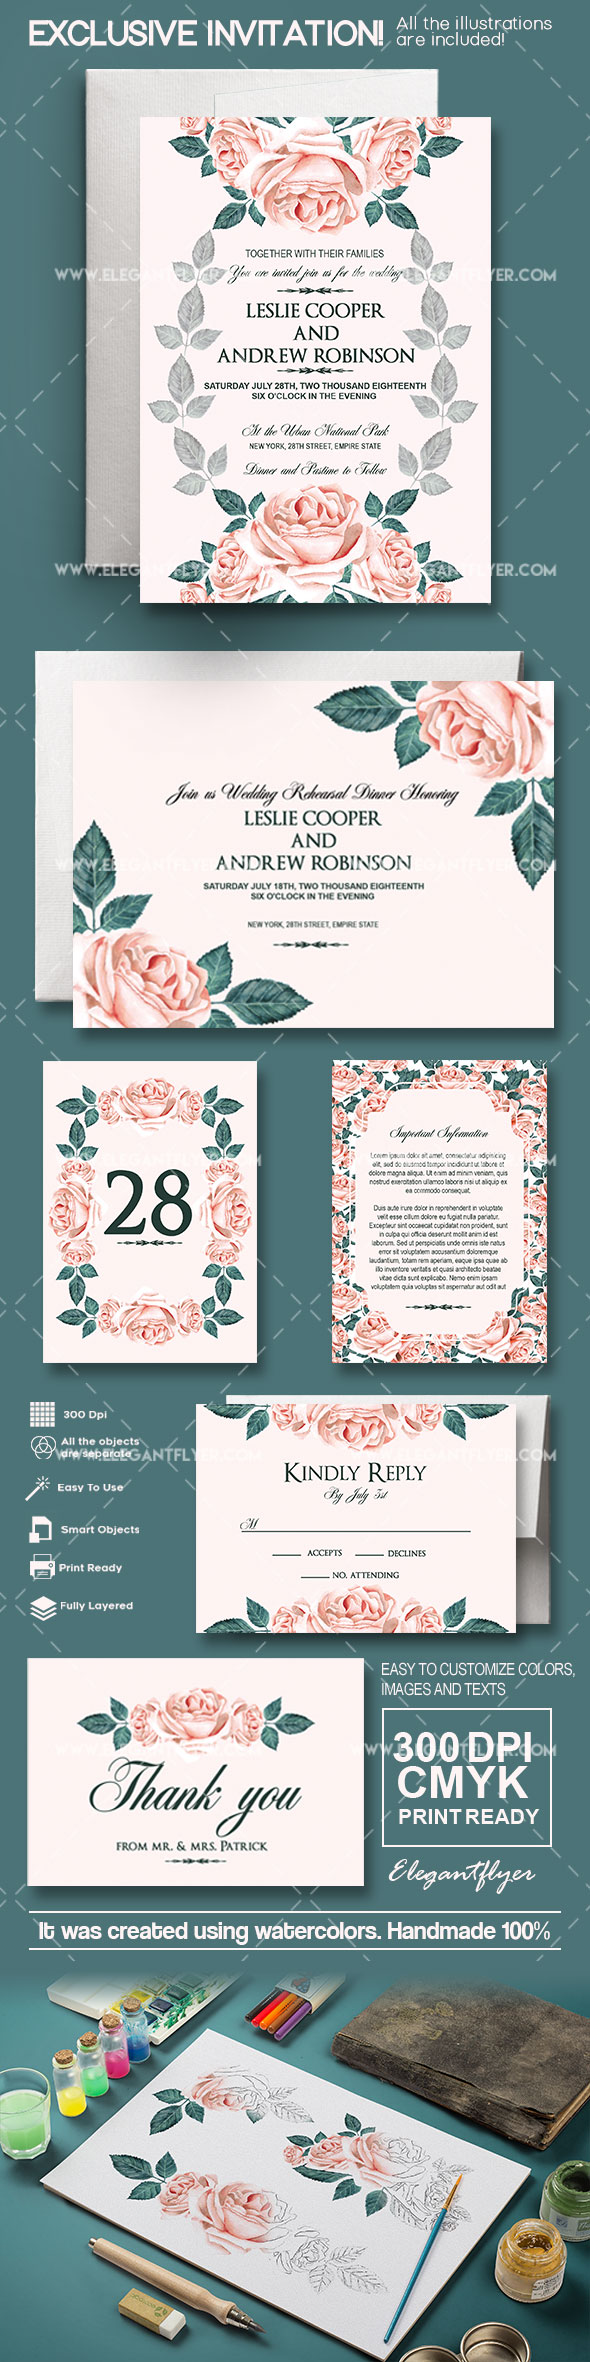 Wedding – Invitation PSD Template